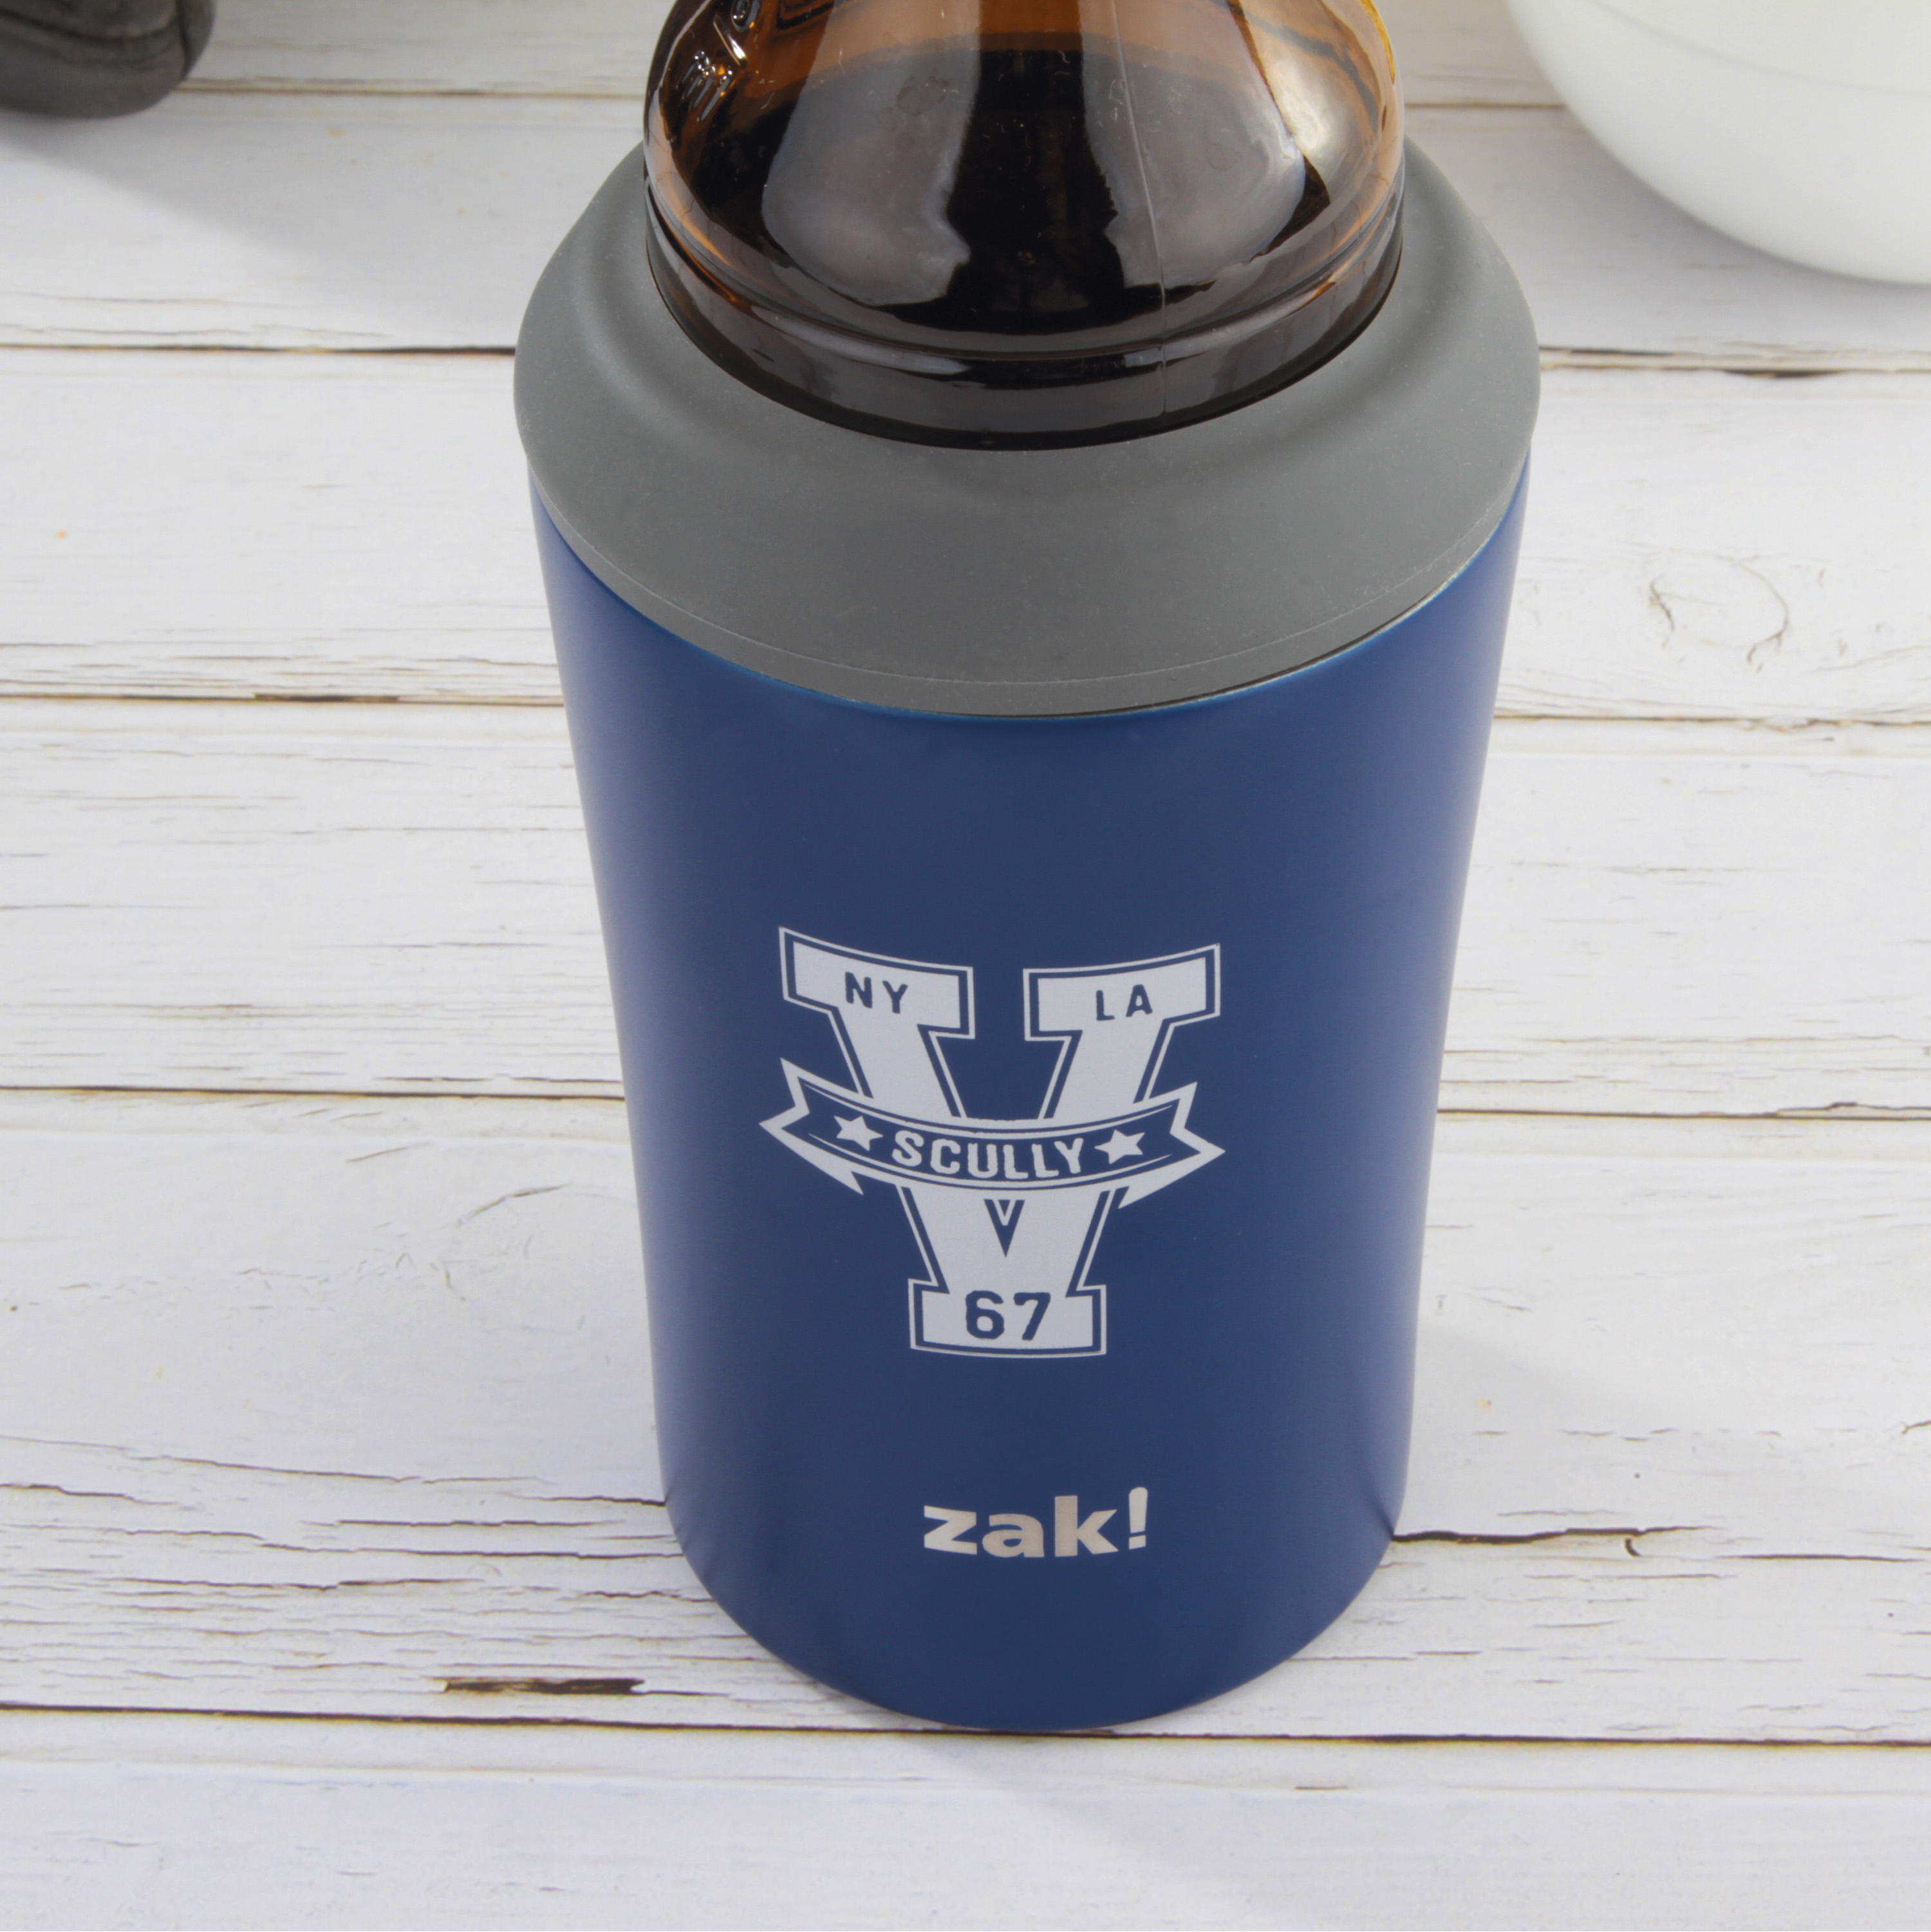 Zak Hydration 12 ounce Double Wall Stainless Steel Can and Bottle Cooler with Vacuum Insulation, Vin Scully slideshow image 9